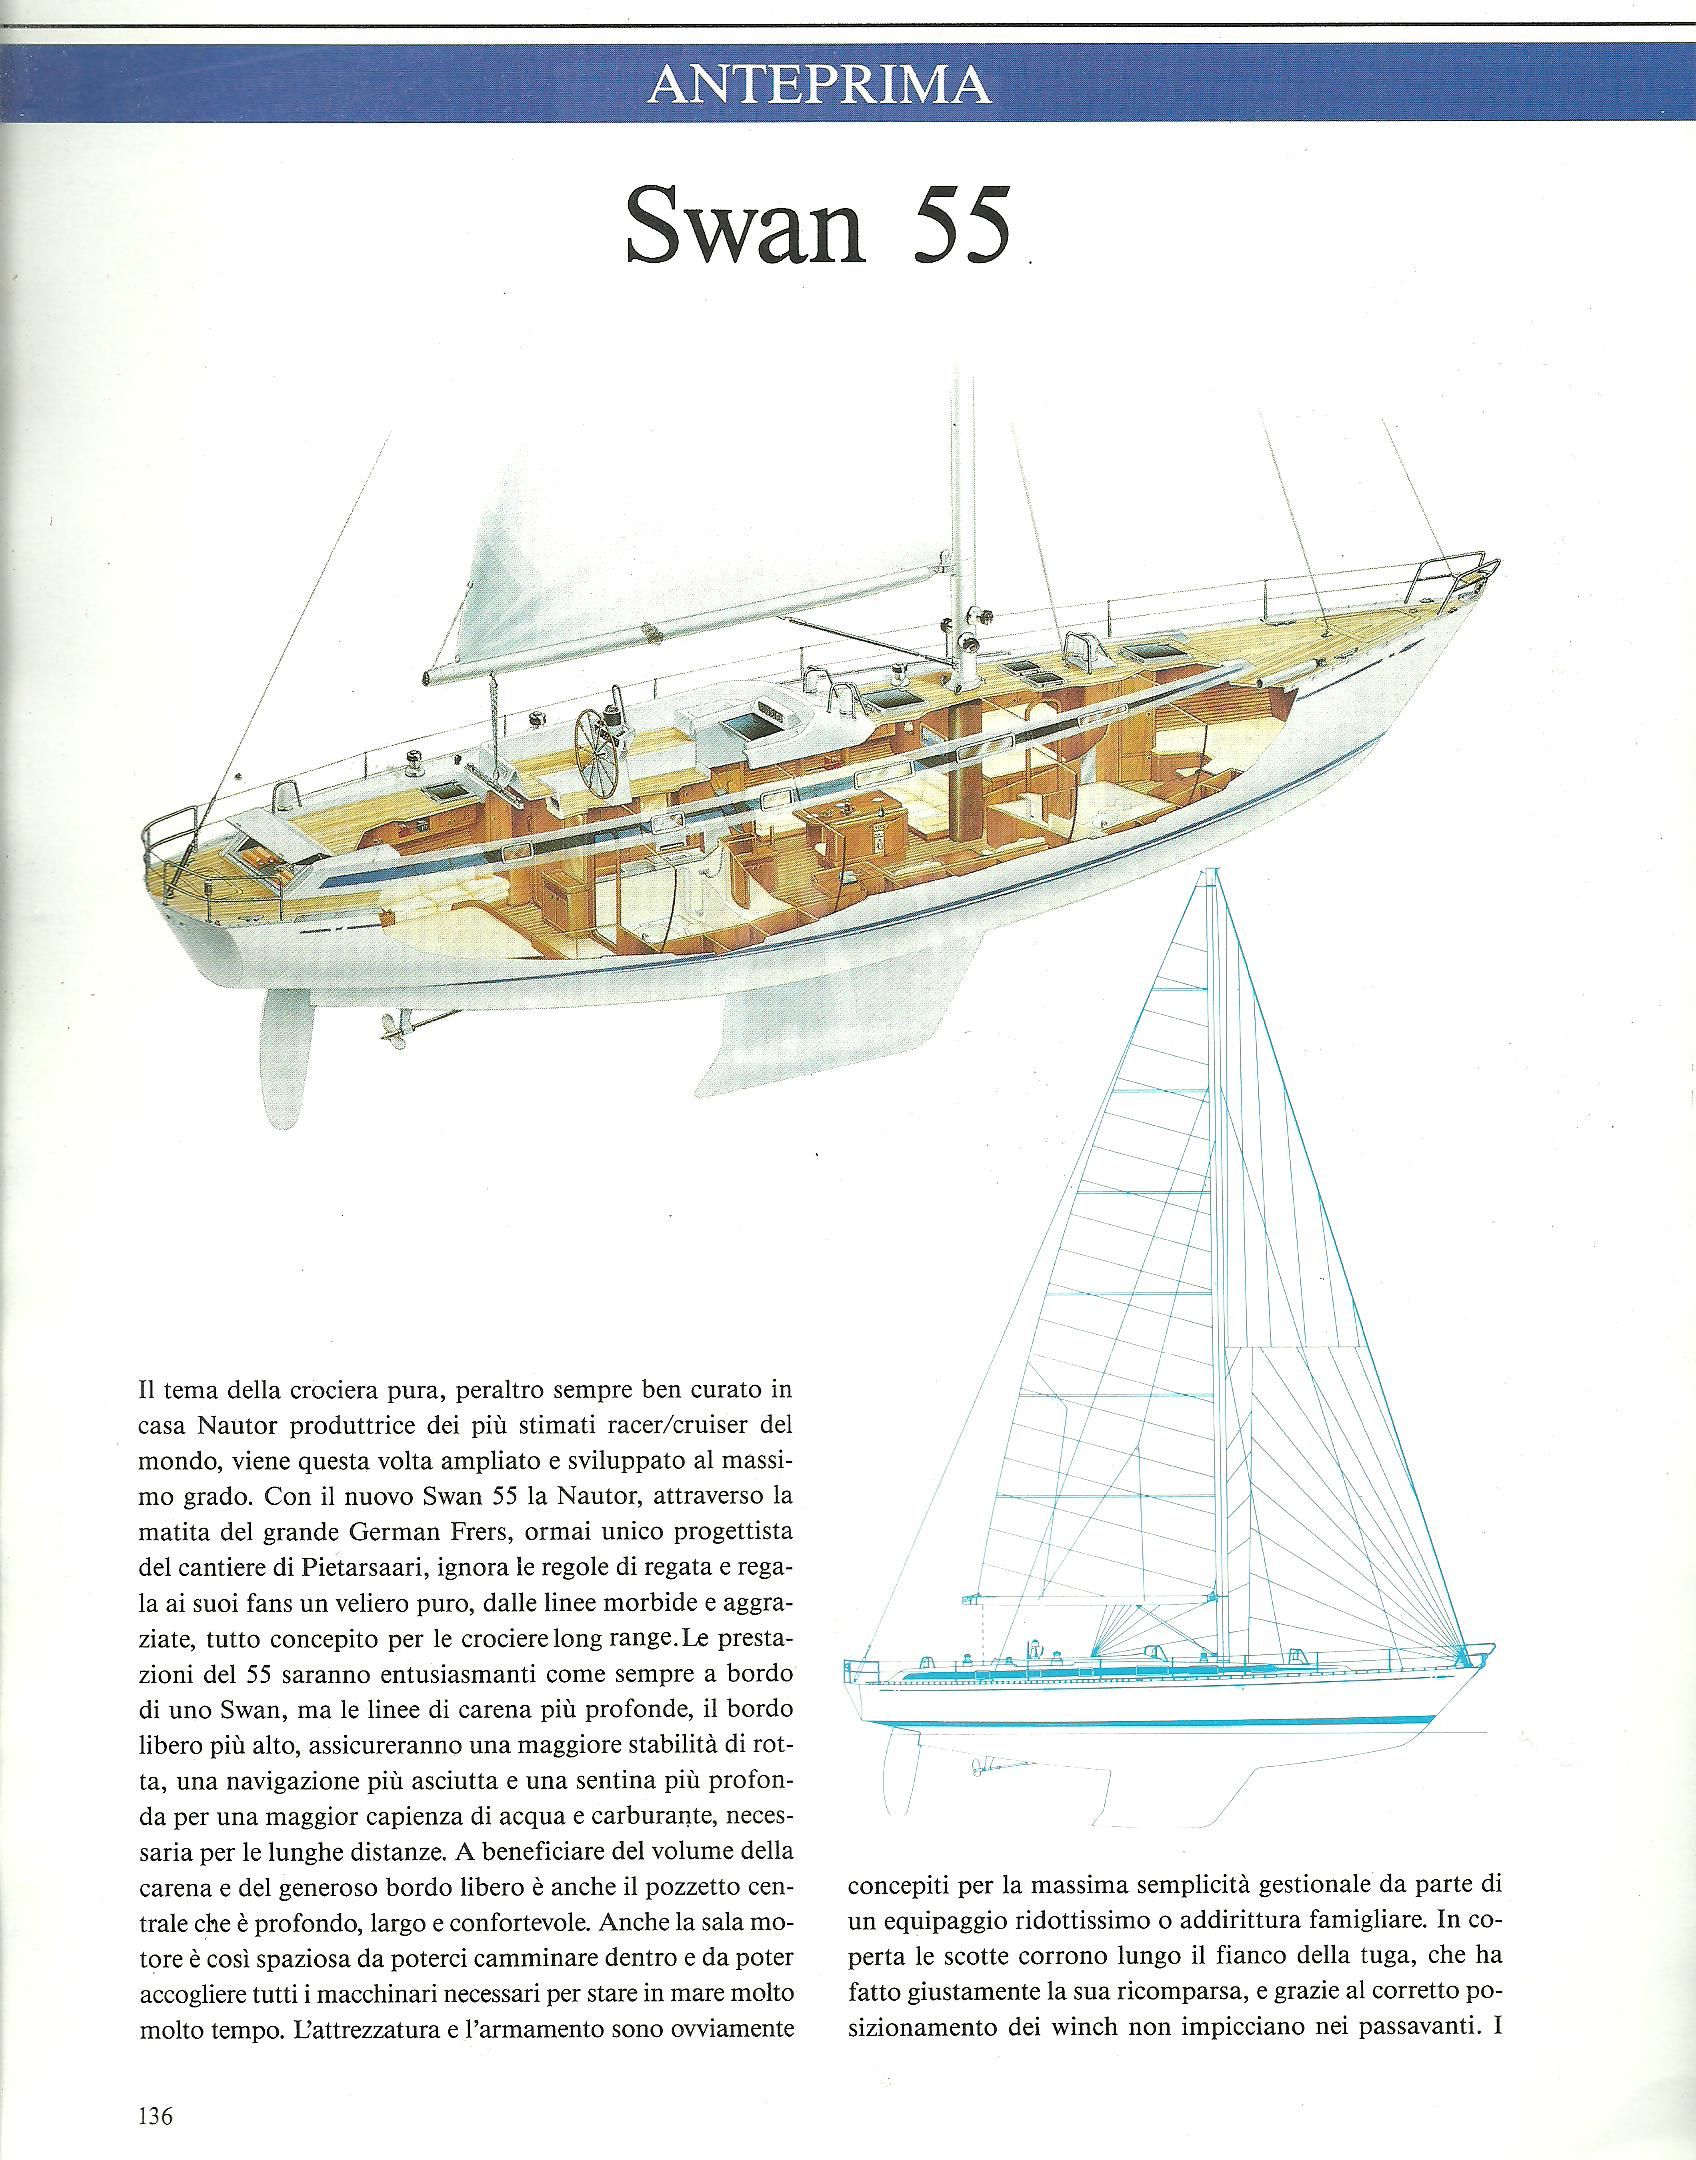 1990 PRESS SWAN 55 FRERS Uomomare144 011.jpg